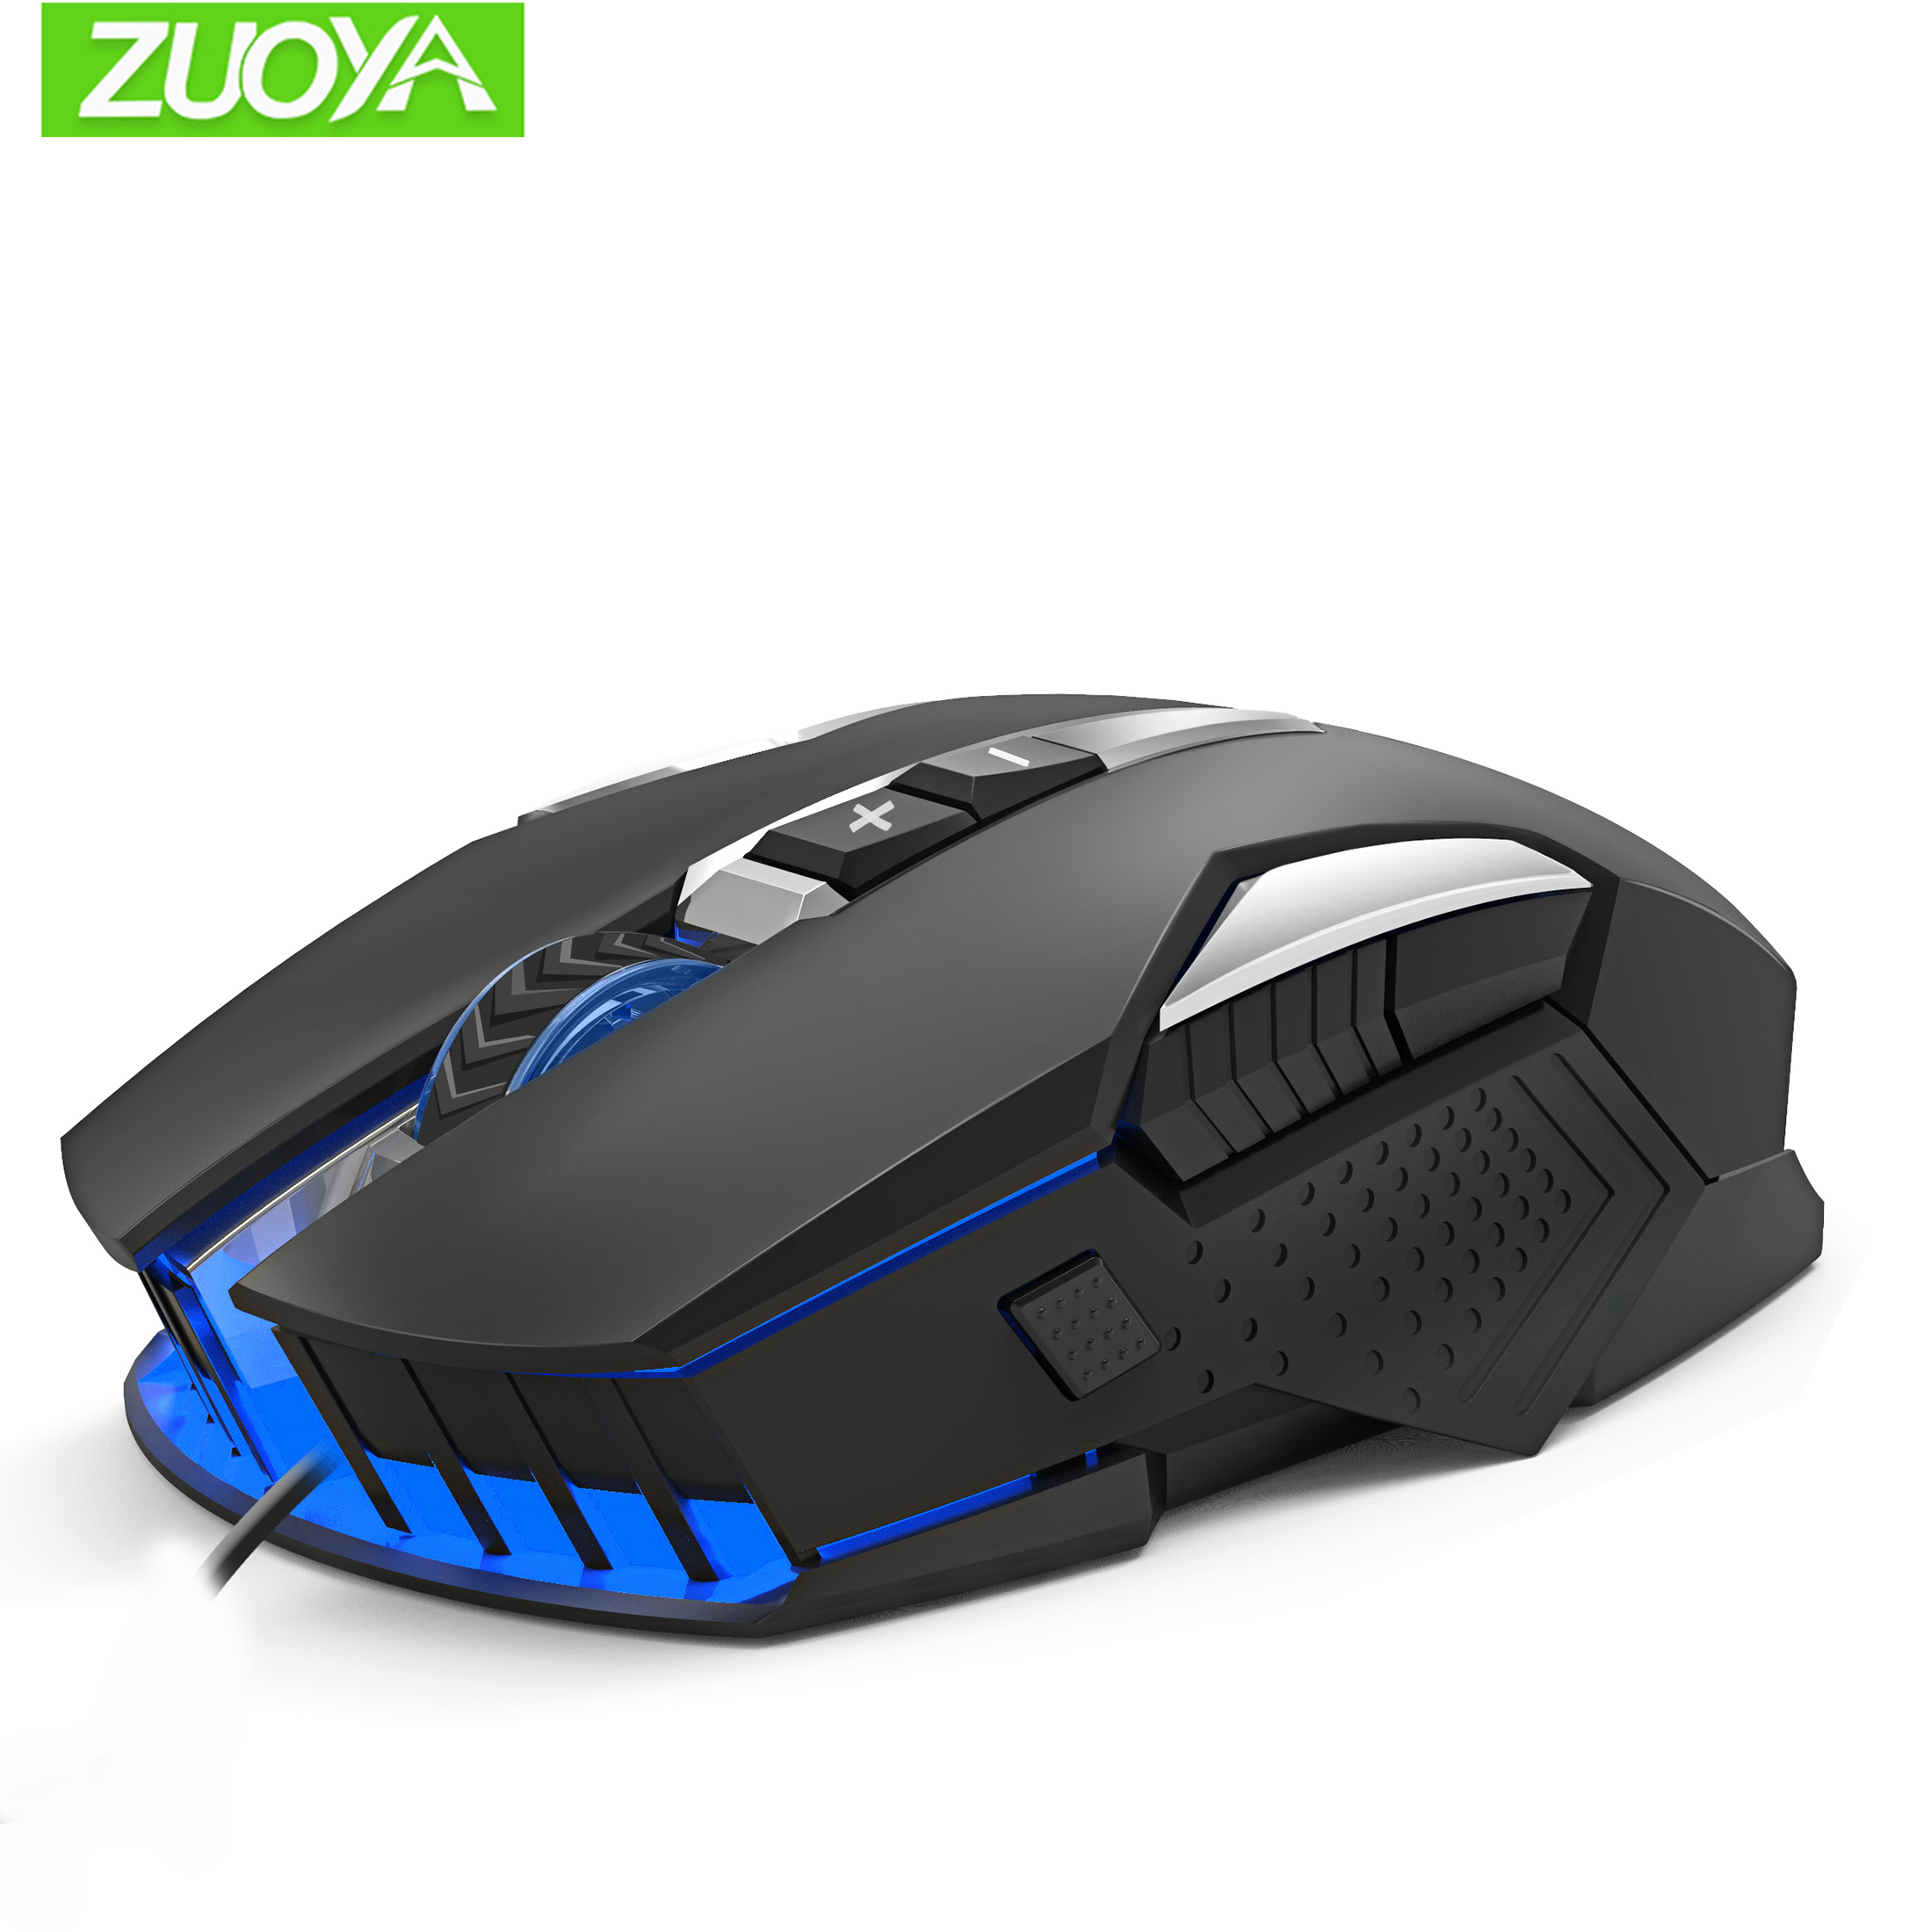 ZUOYA Gaming Mouse USB Wired Optica Micel LED Backlit Game Mause For PC Laptop Pro Gamer